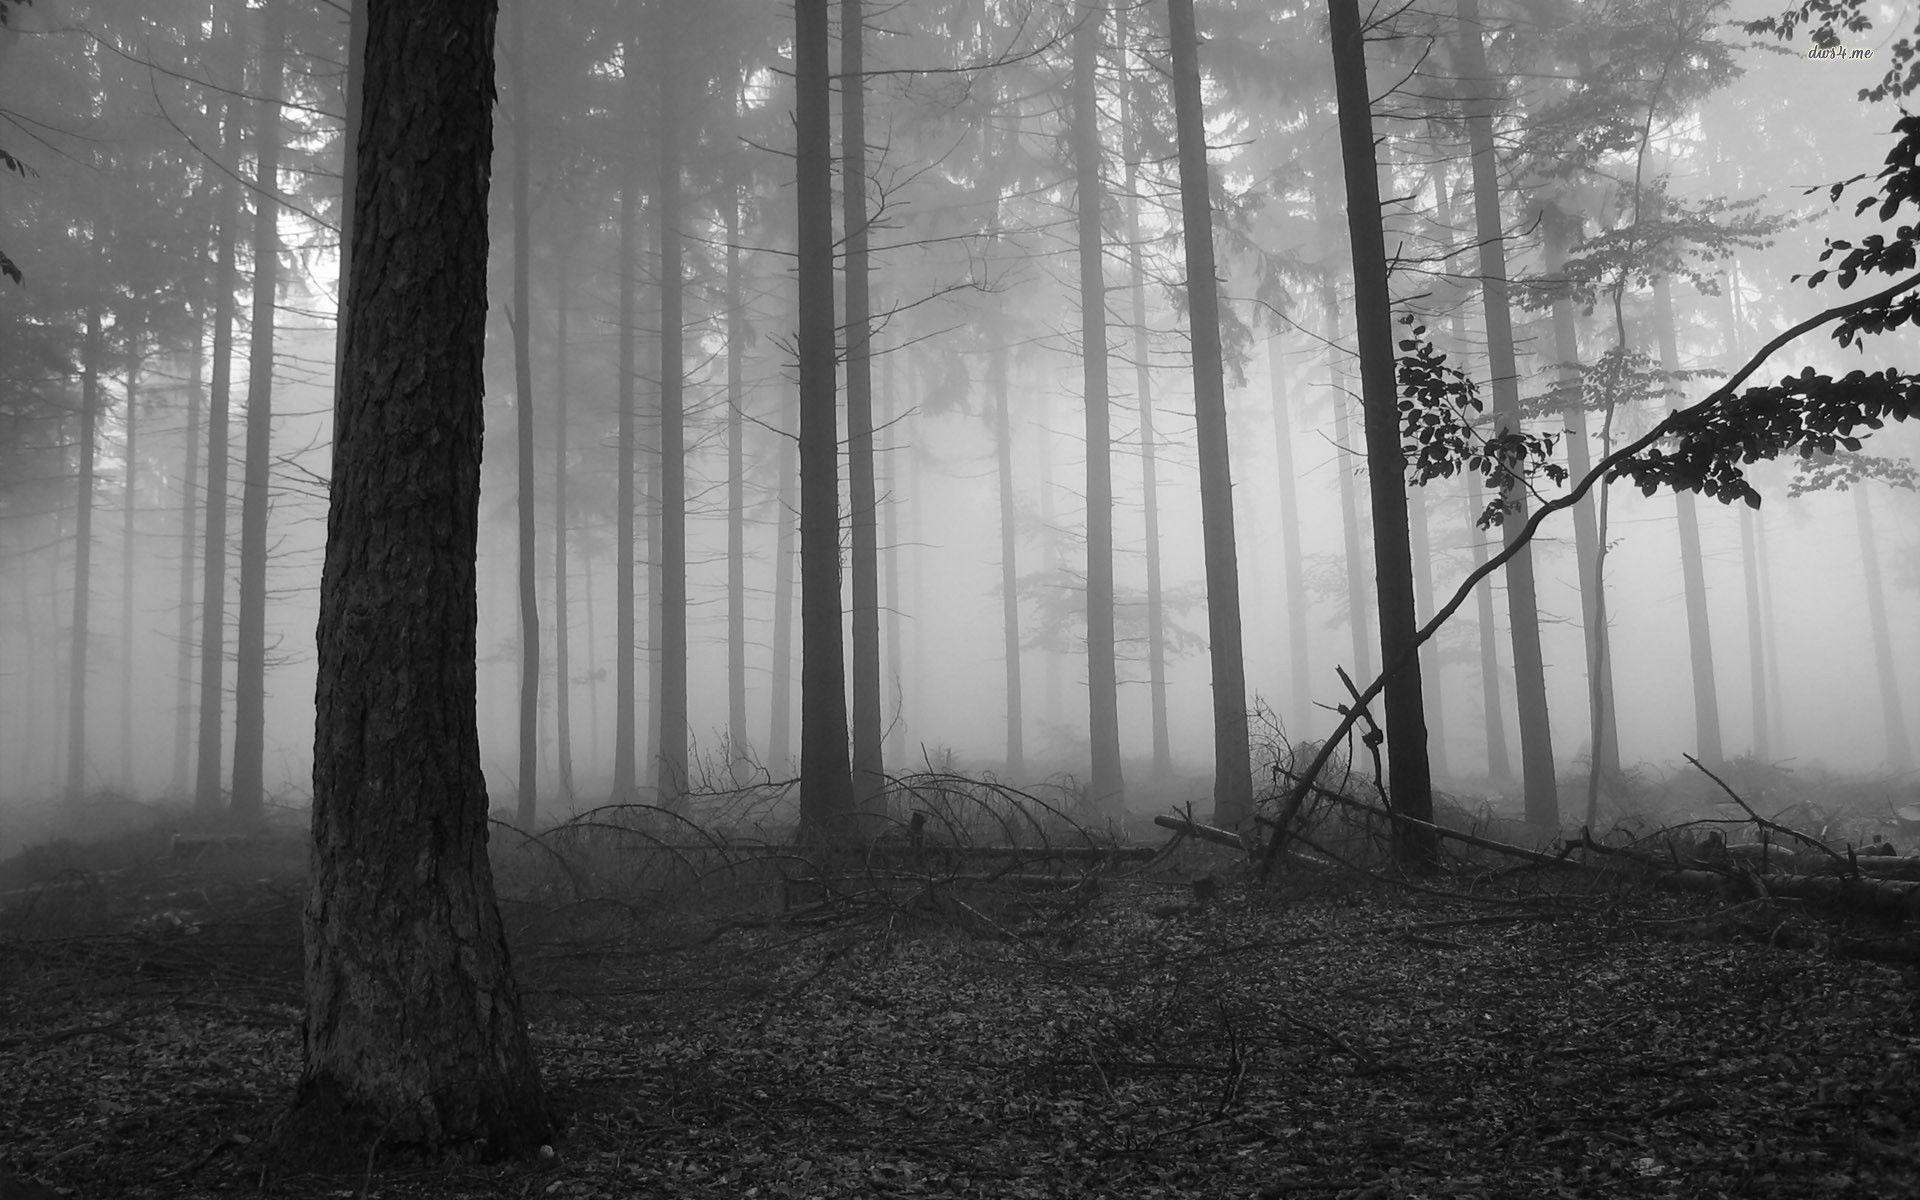 Dark Forest Background Images & Pictures - Becuo